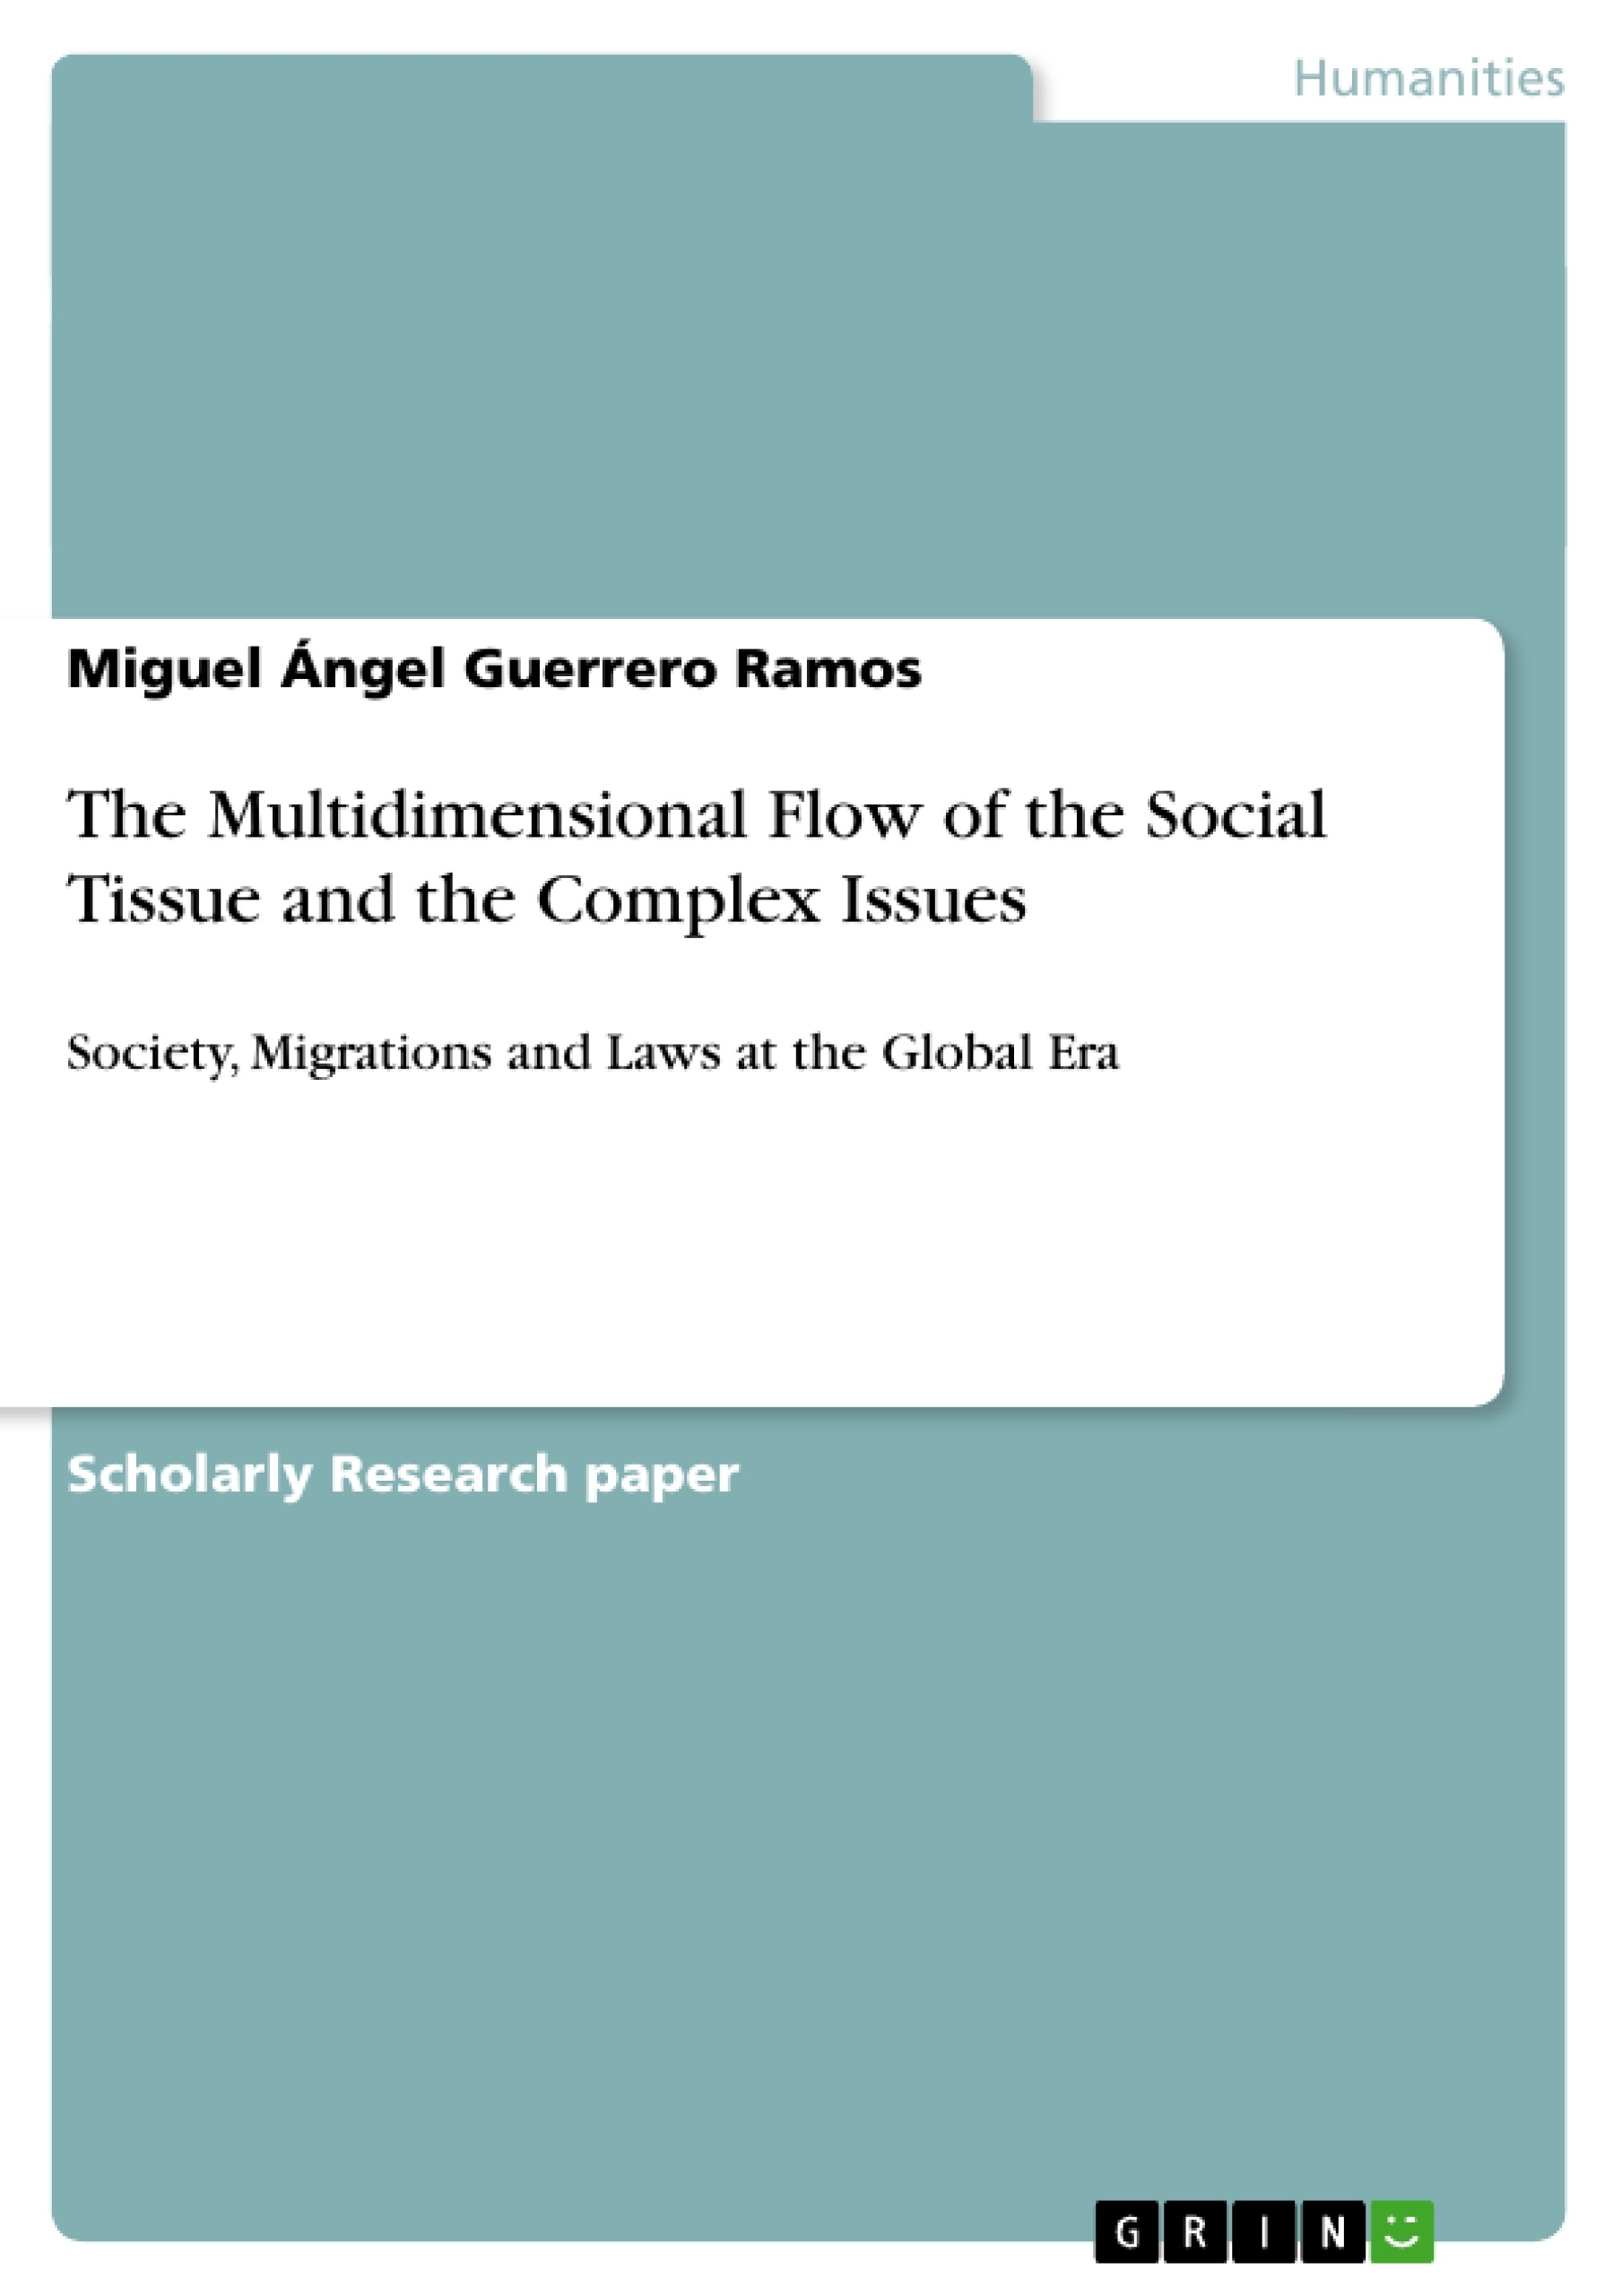 Title: The Multidimensional Flow of the Social Tissue and the Complex Issues